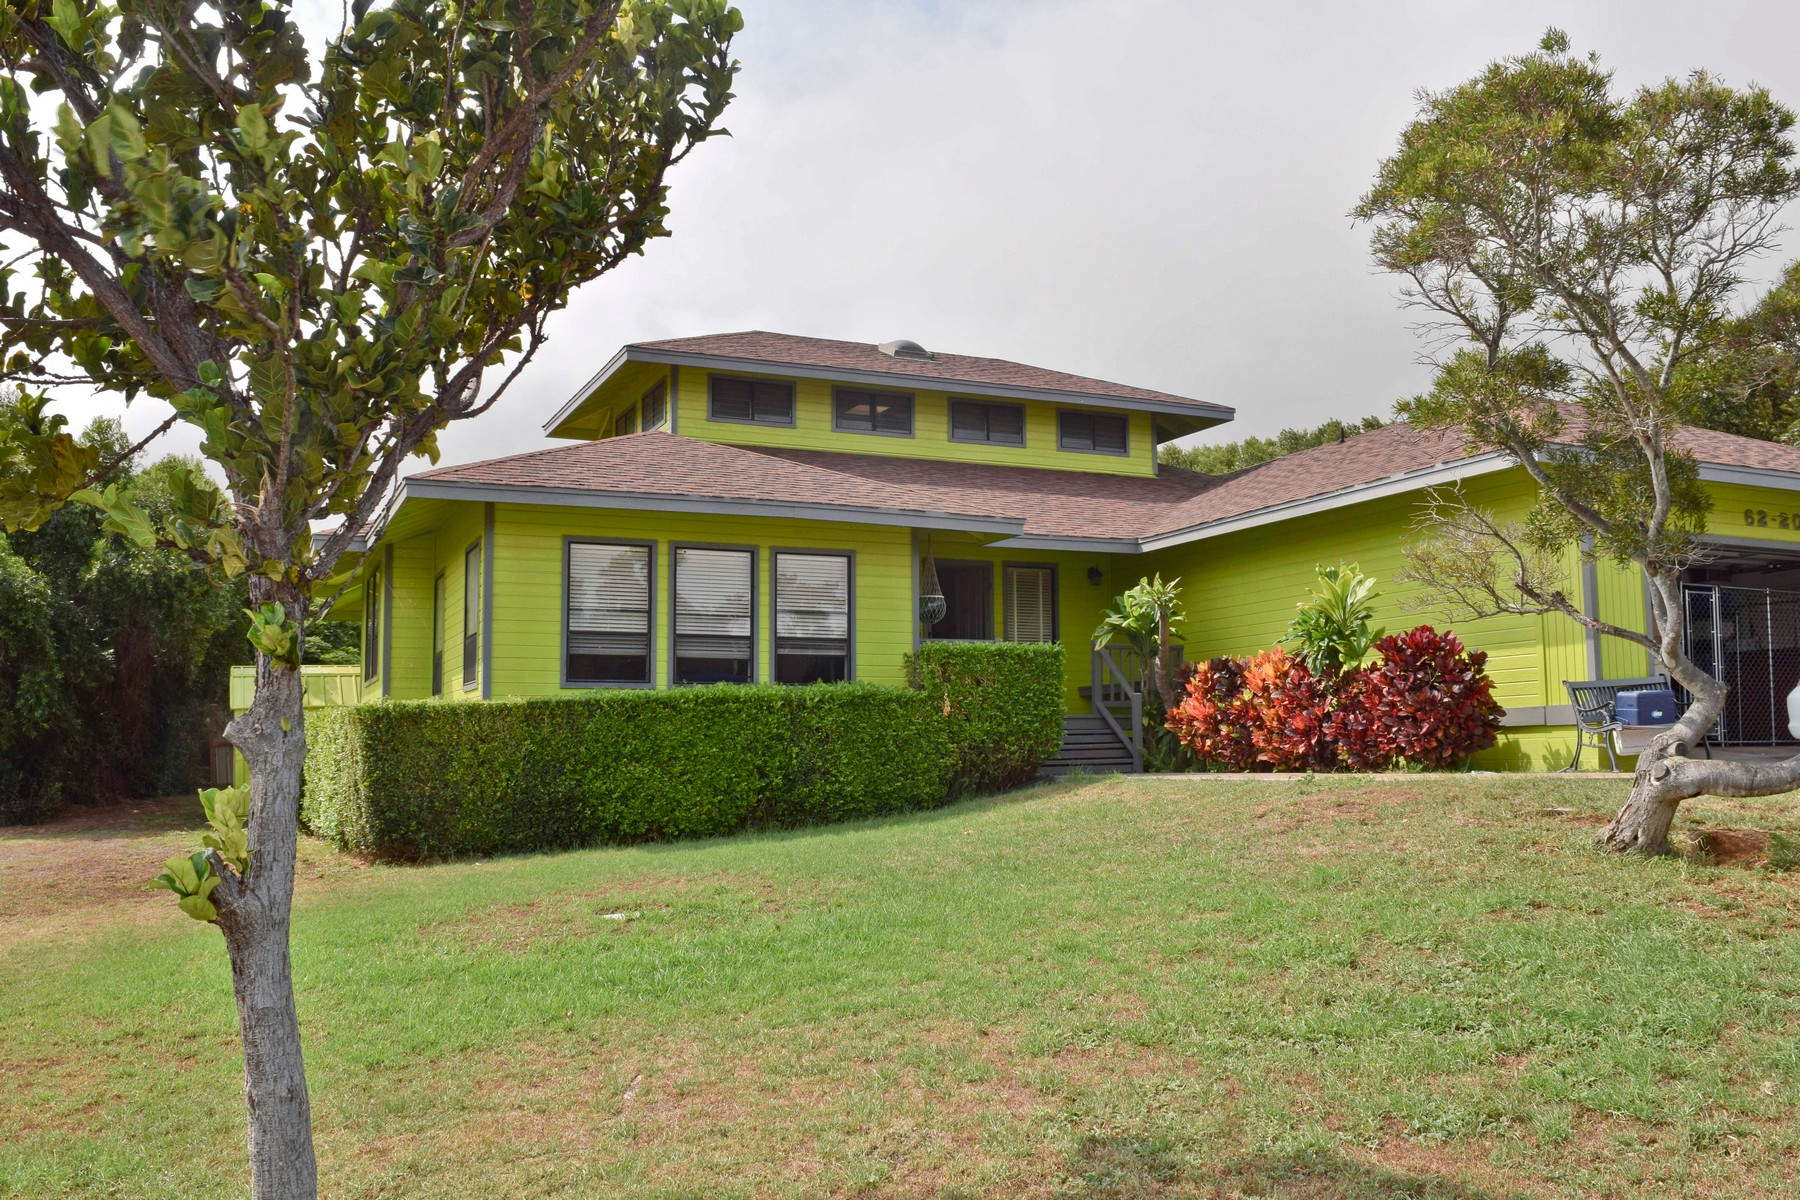 Single Family Home for Active at 62-2054 Mahua St. Waimea, Hawaii 96743 United States